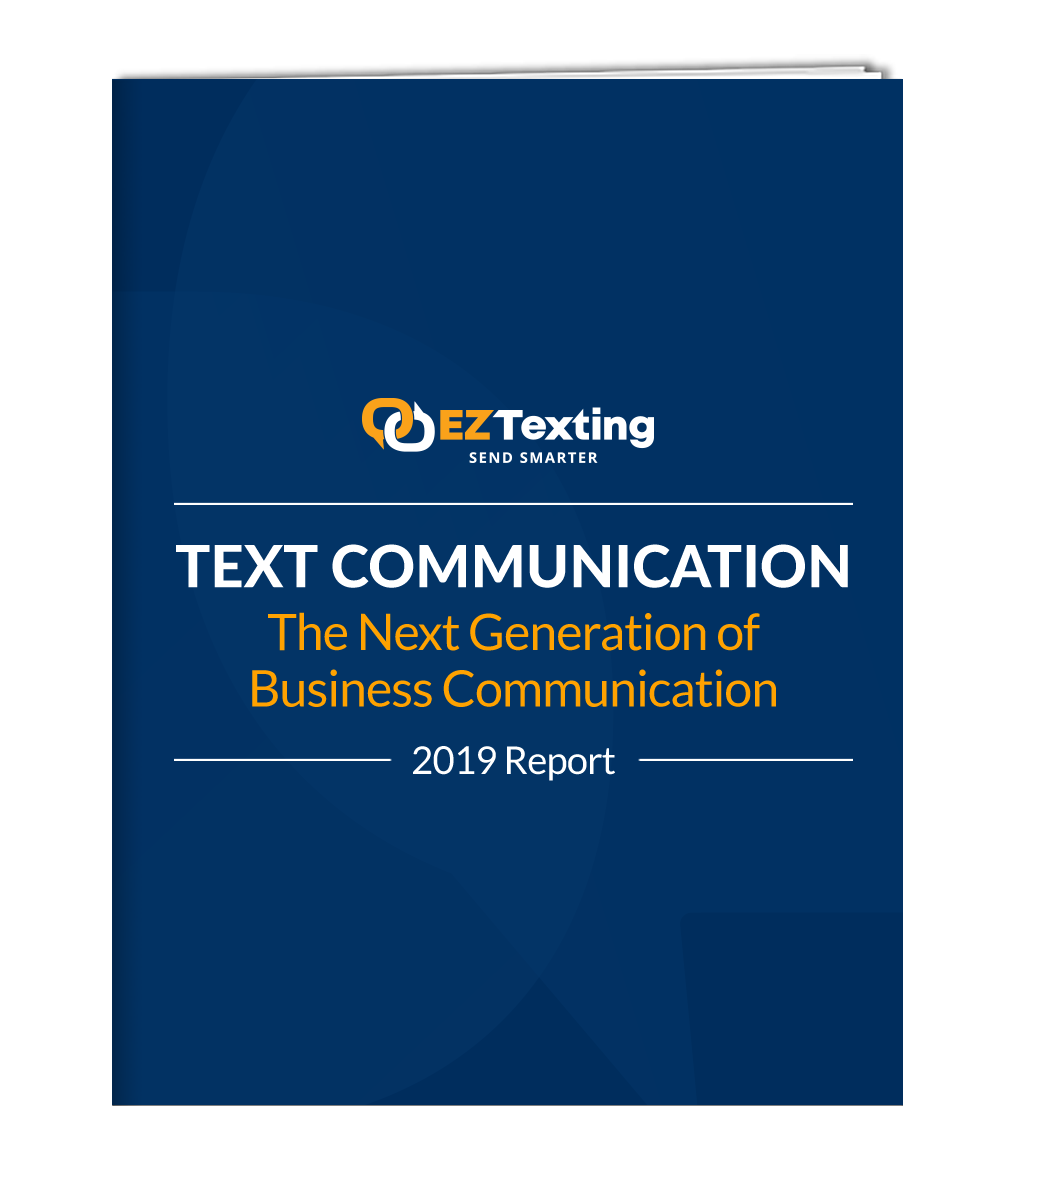 2019 Text Communication Report